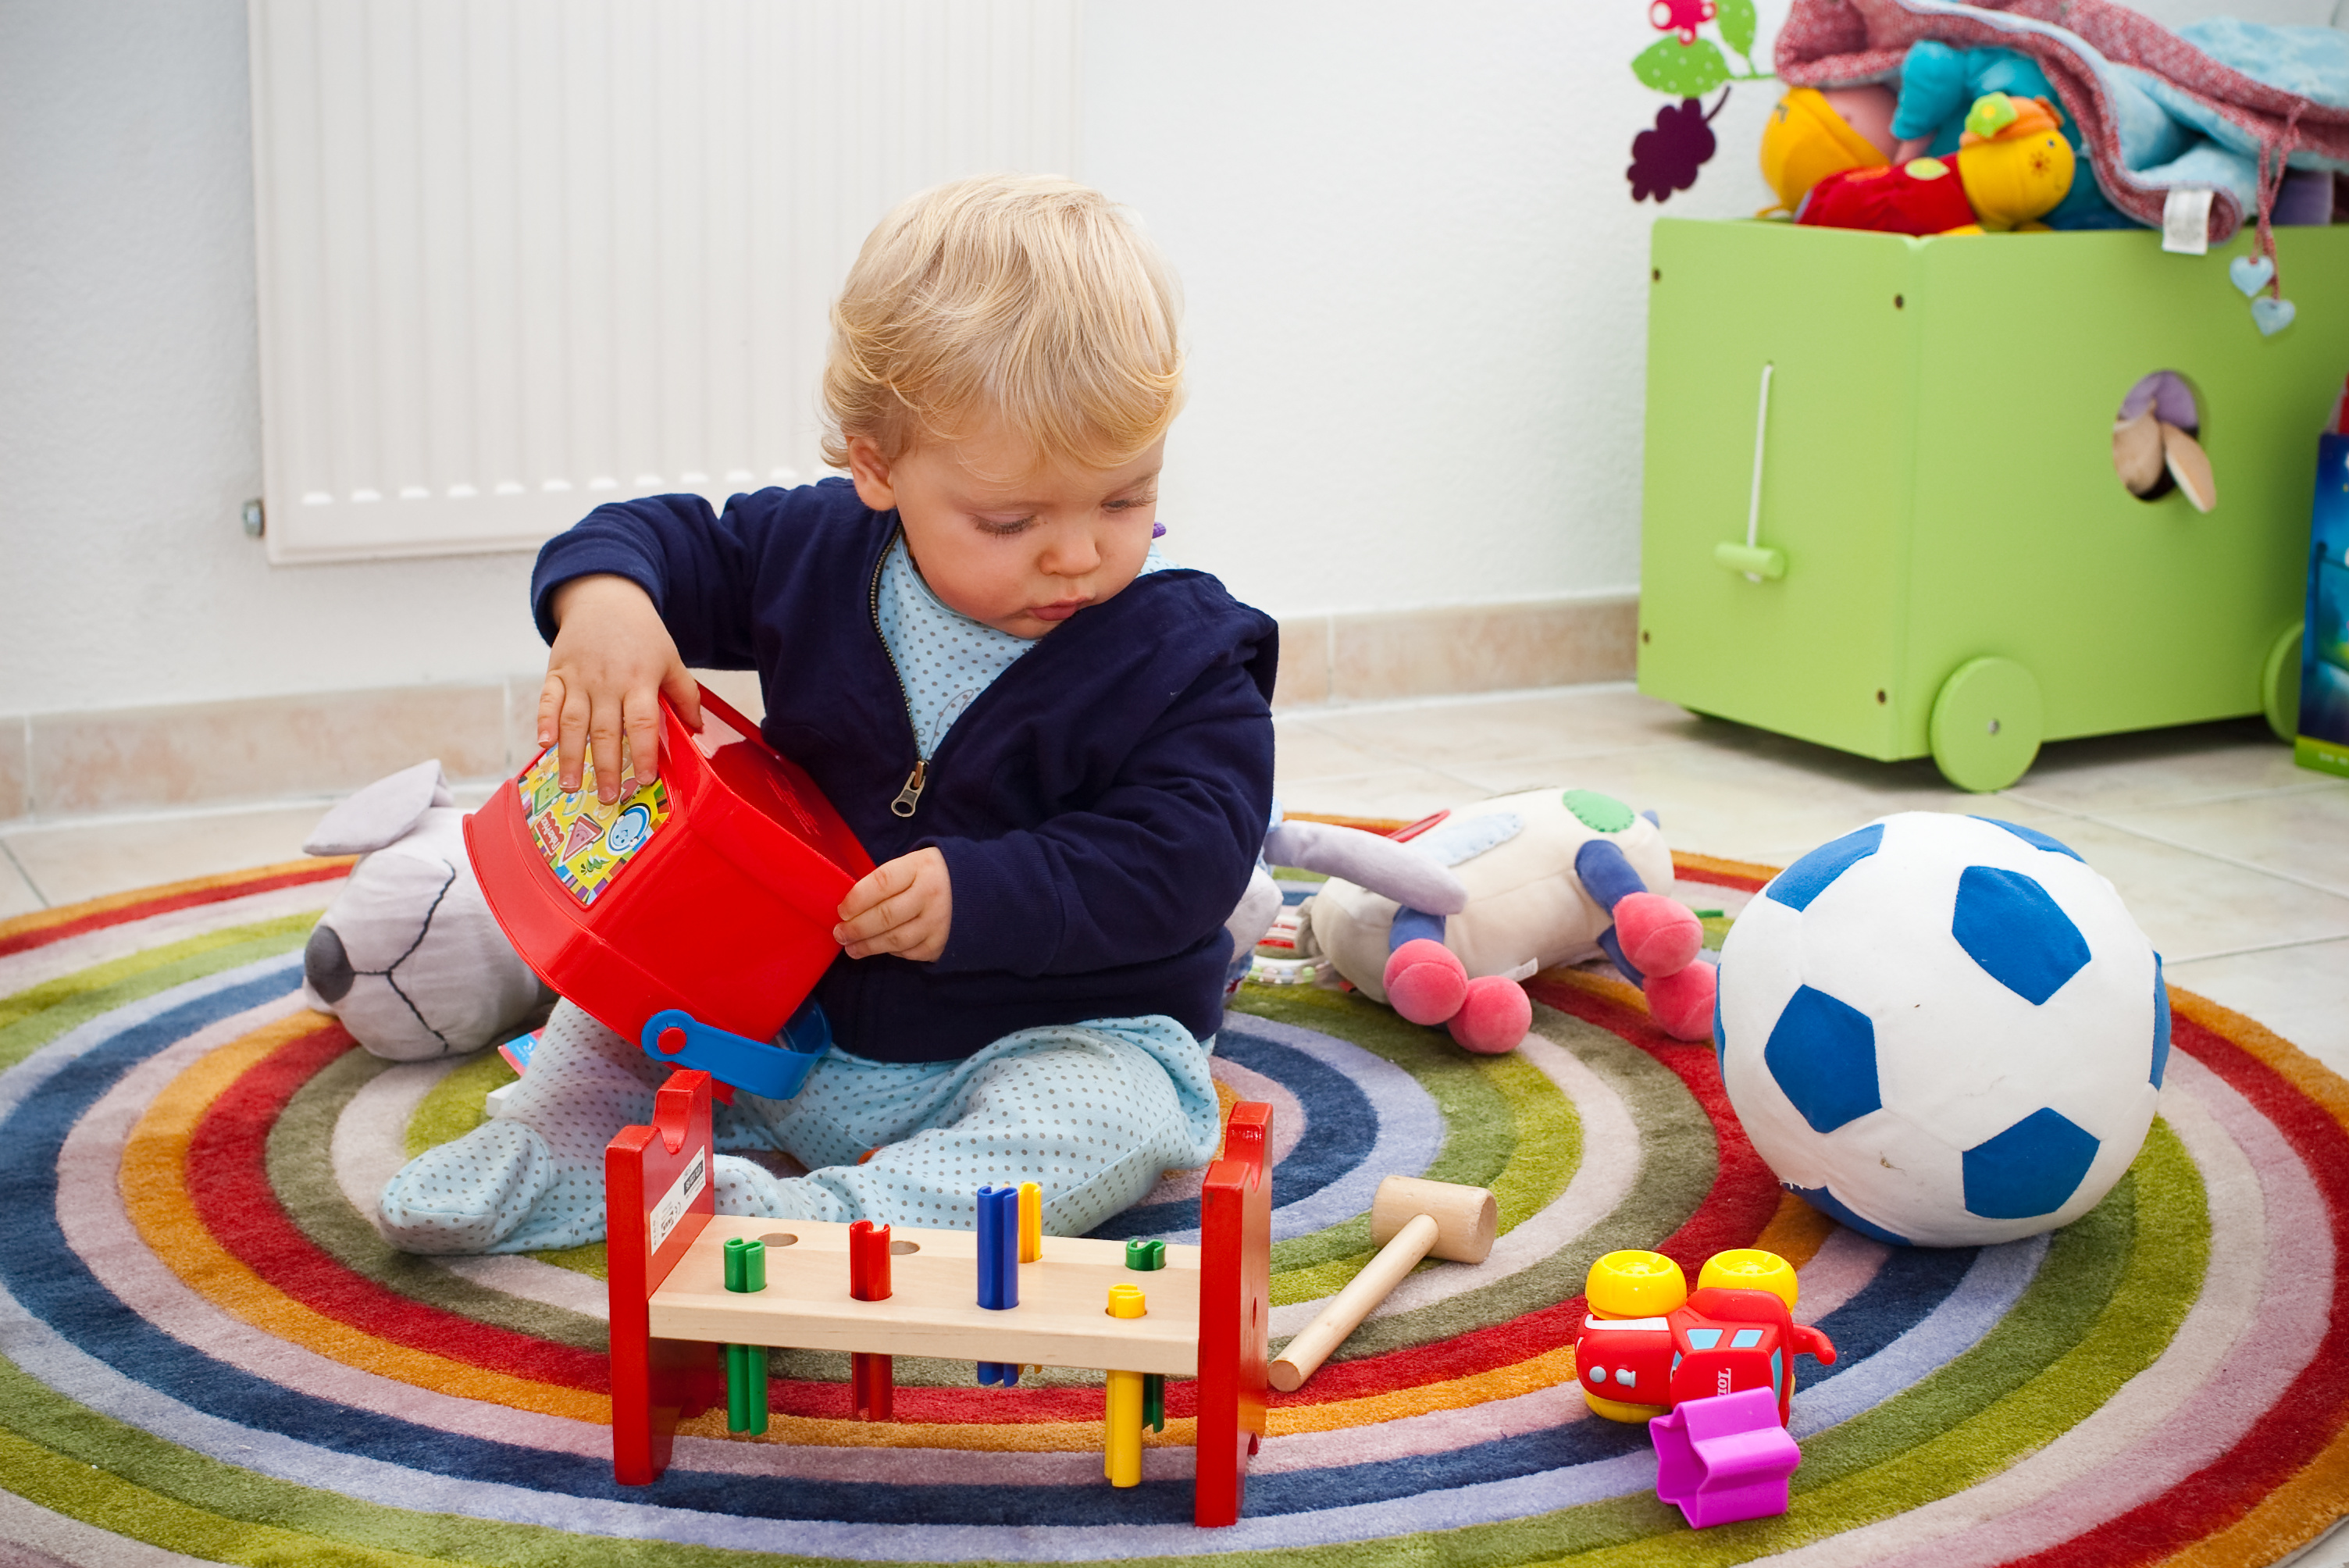 Excellent Tips On Toys To Help You Buy The Best